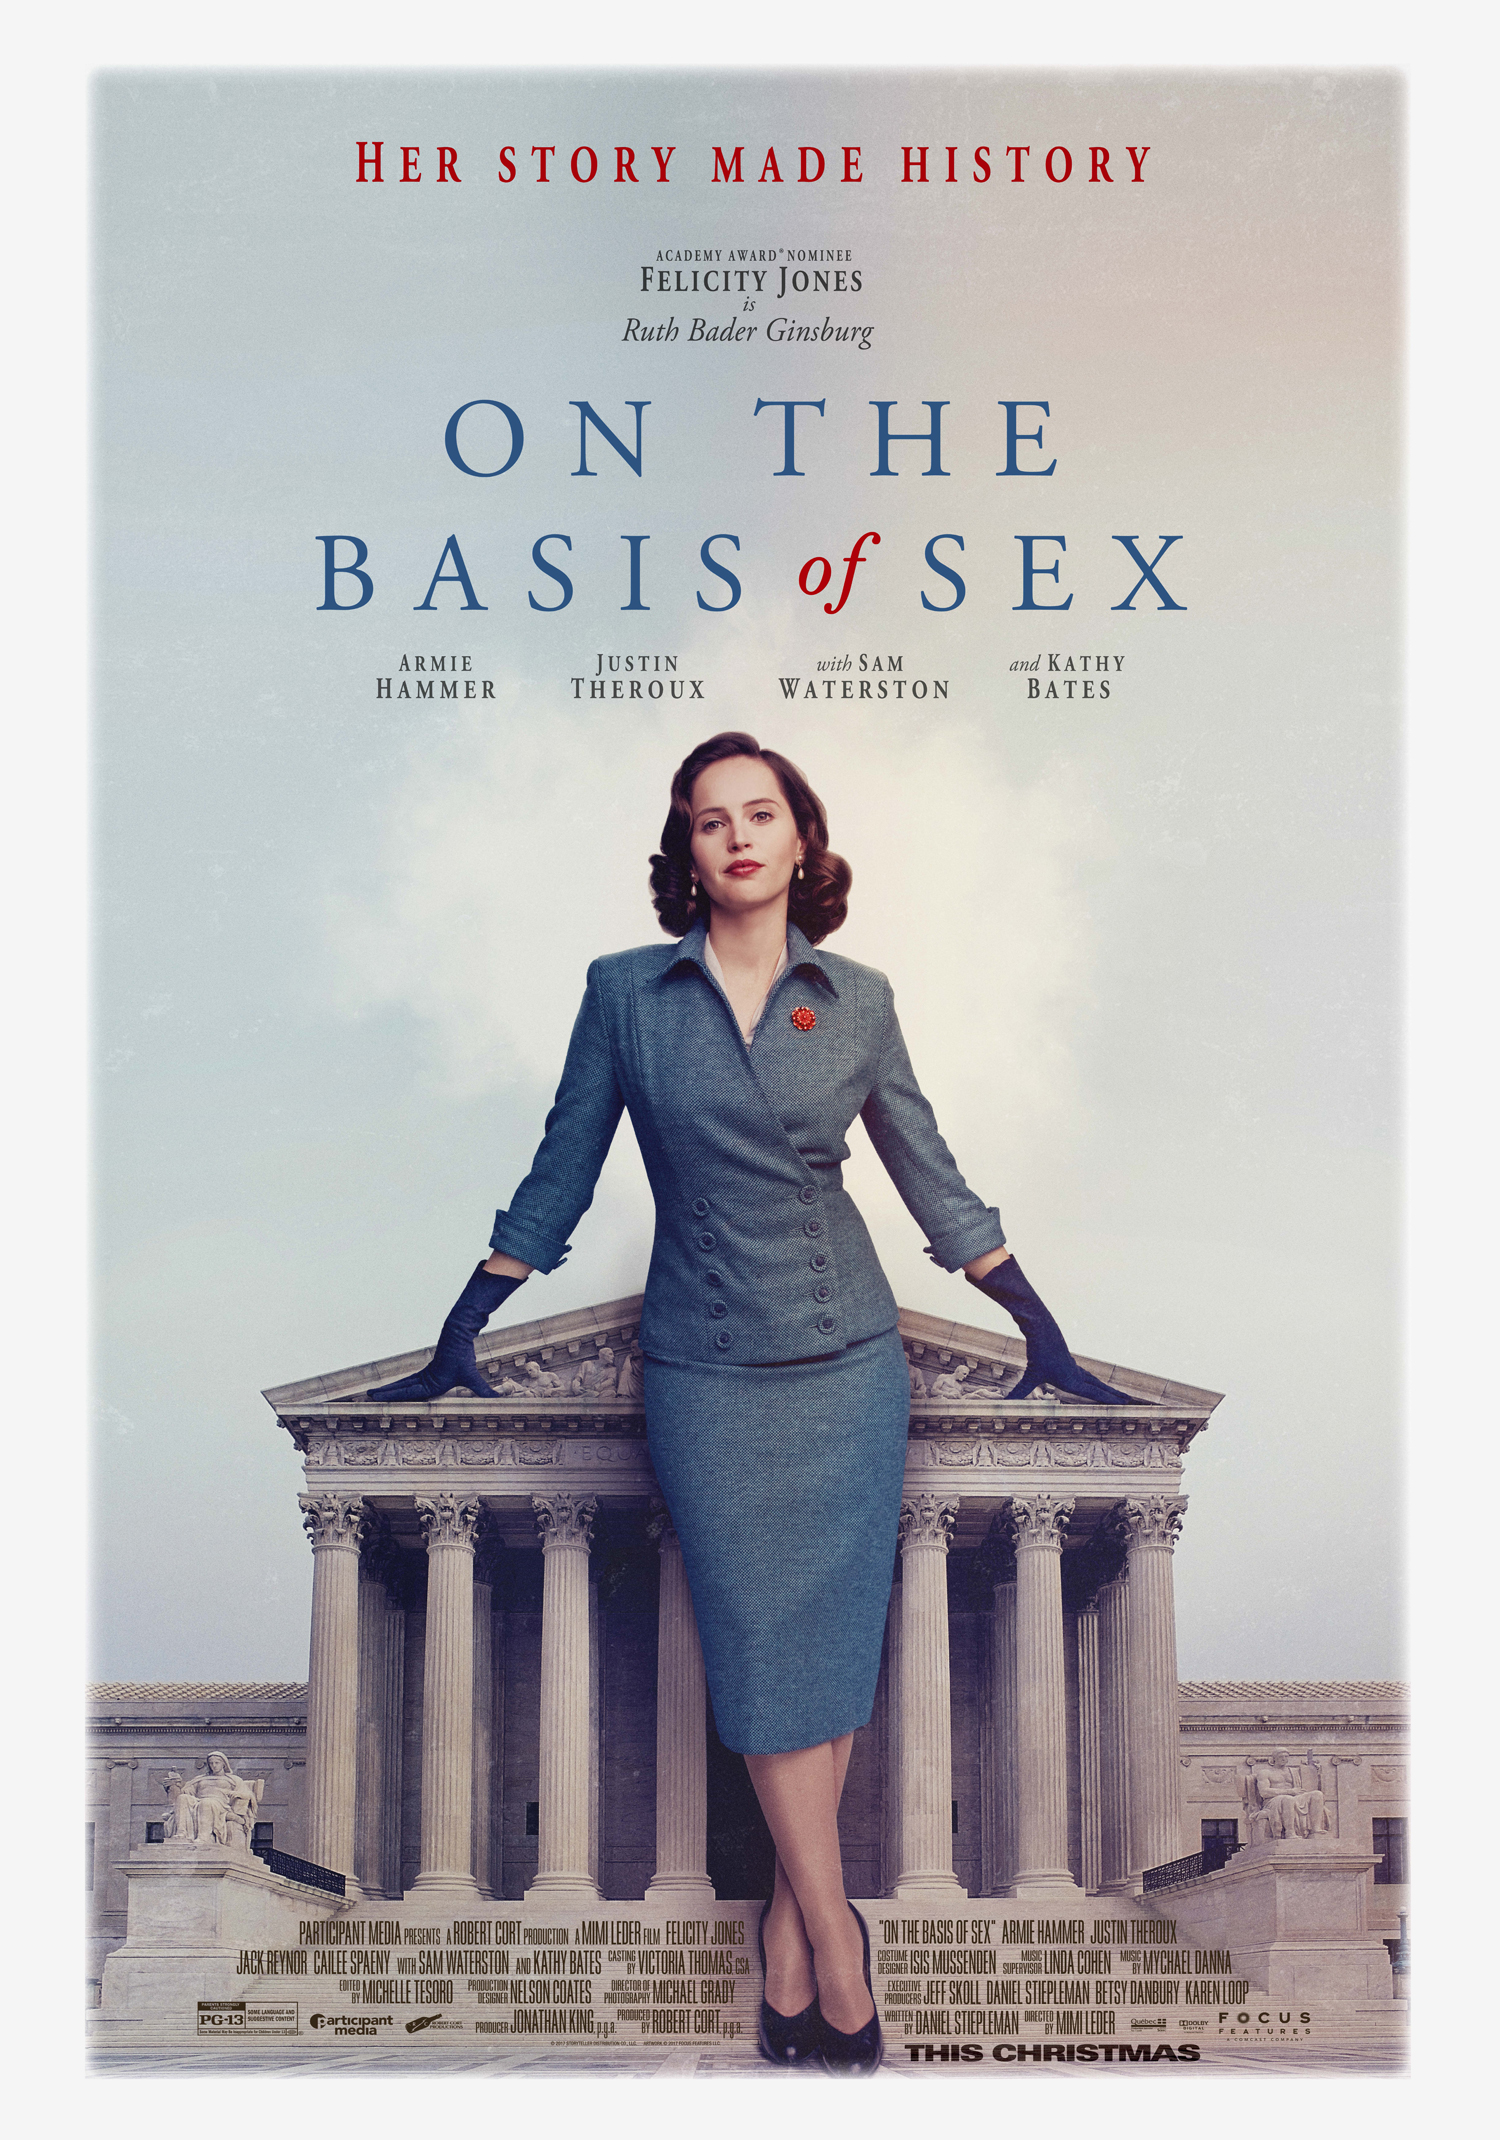 'On The Basis Of Sex' brings the story of Ruth Bader Ginsburg to the big screen.